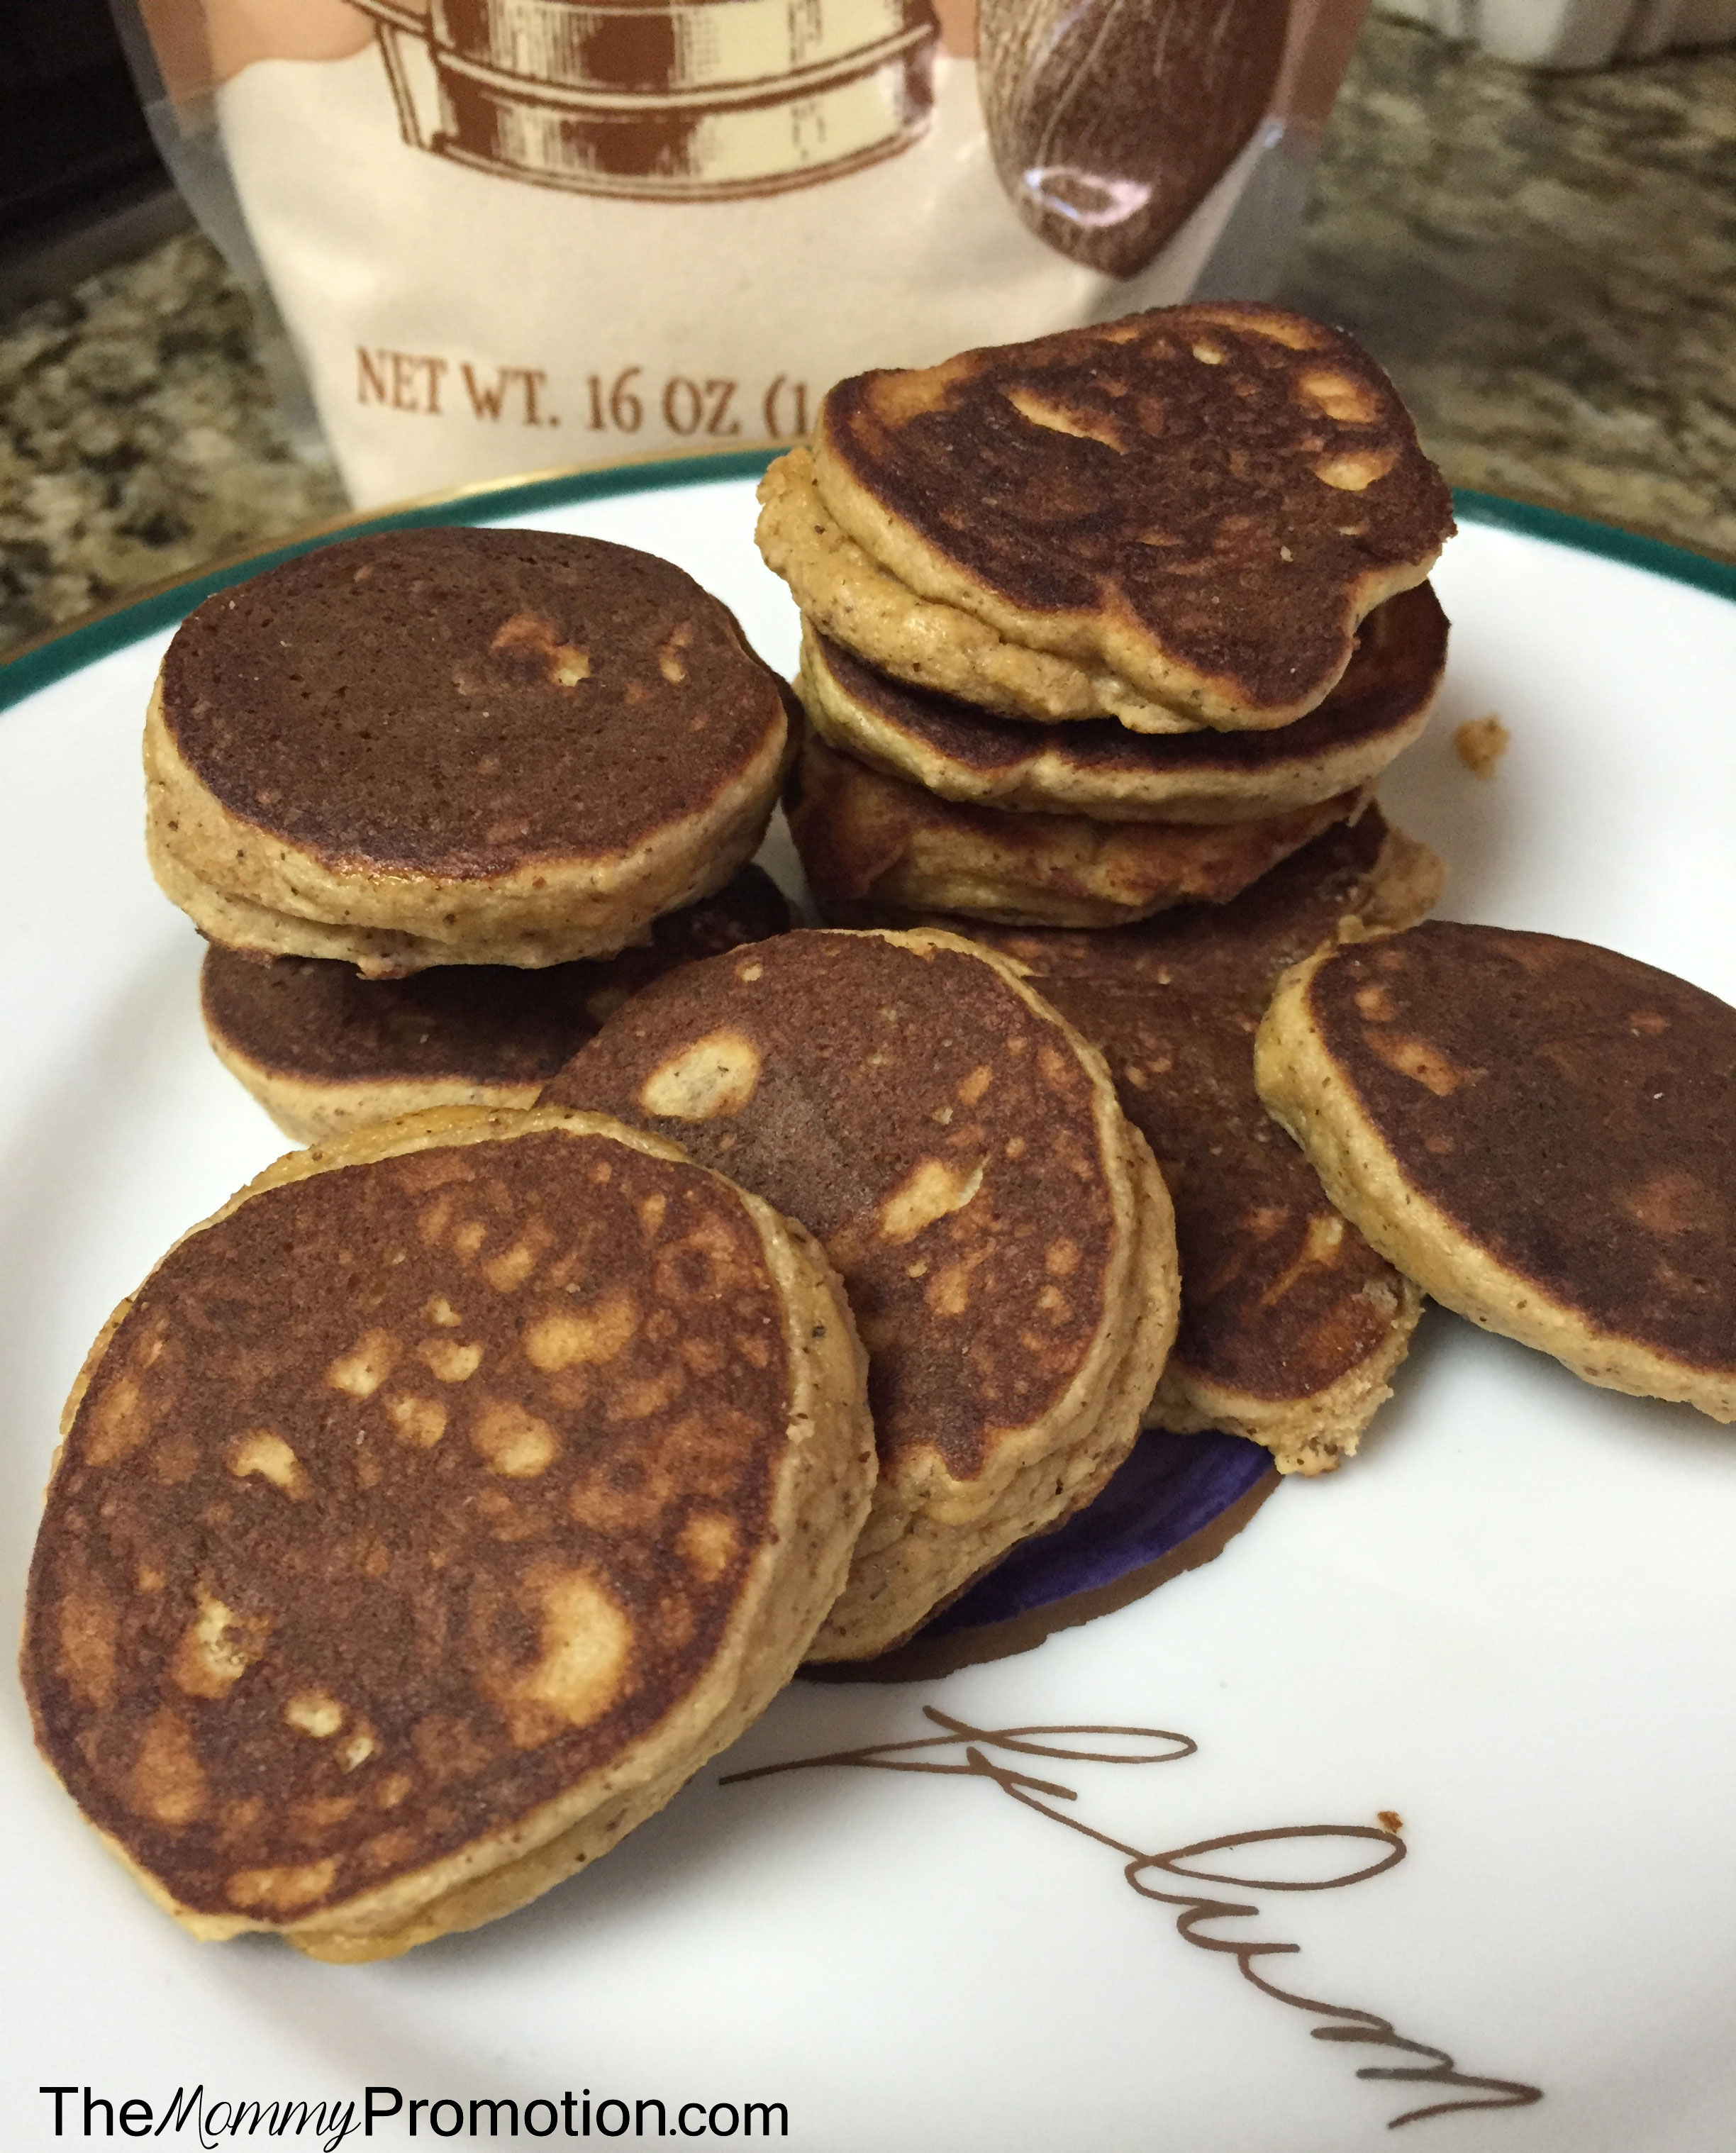 Coconut-Flour-Almond-Butter-Paleo-Organic-Baby-Pancakes_Recipes-_Baby-and-Kids_-The-Mommy-Promotion